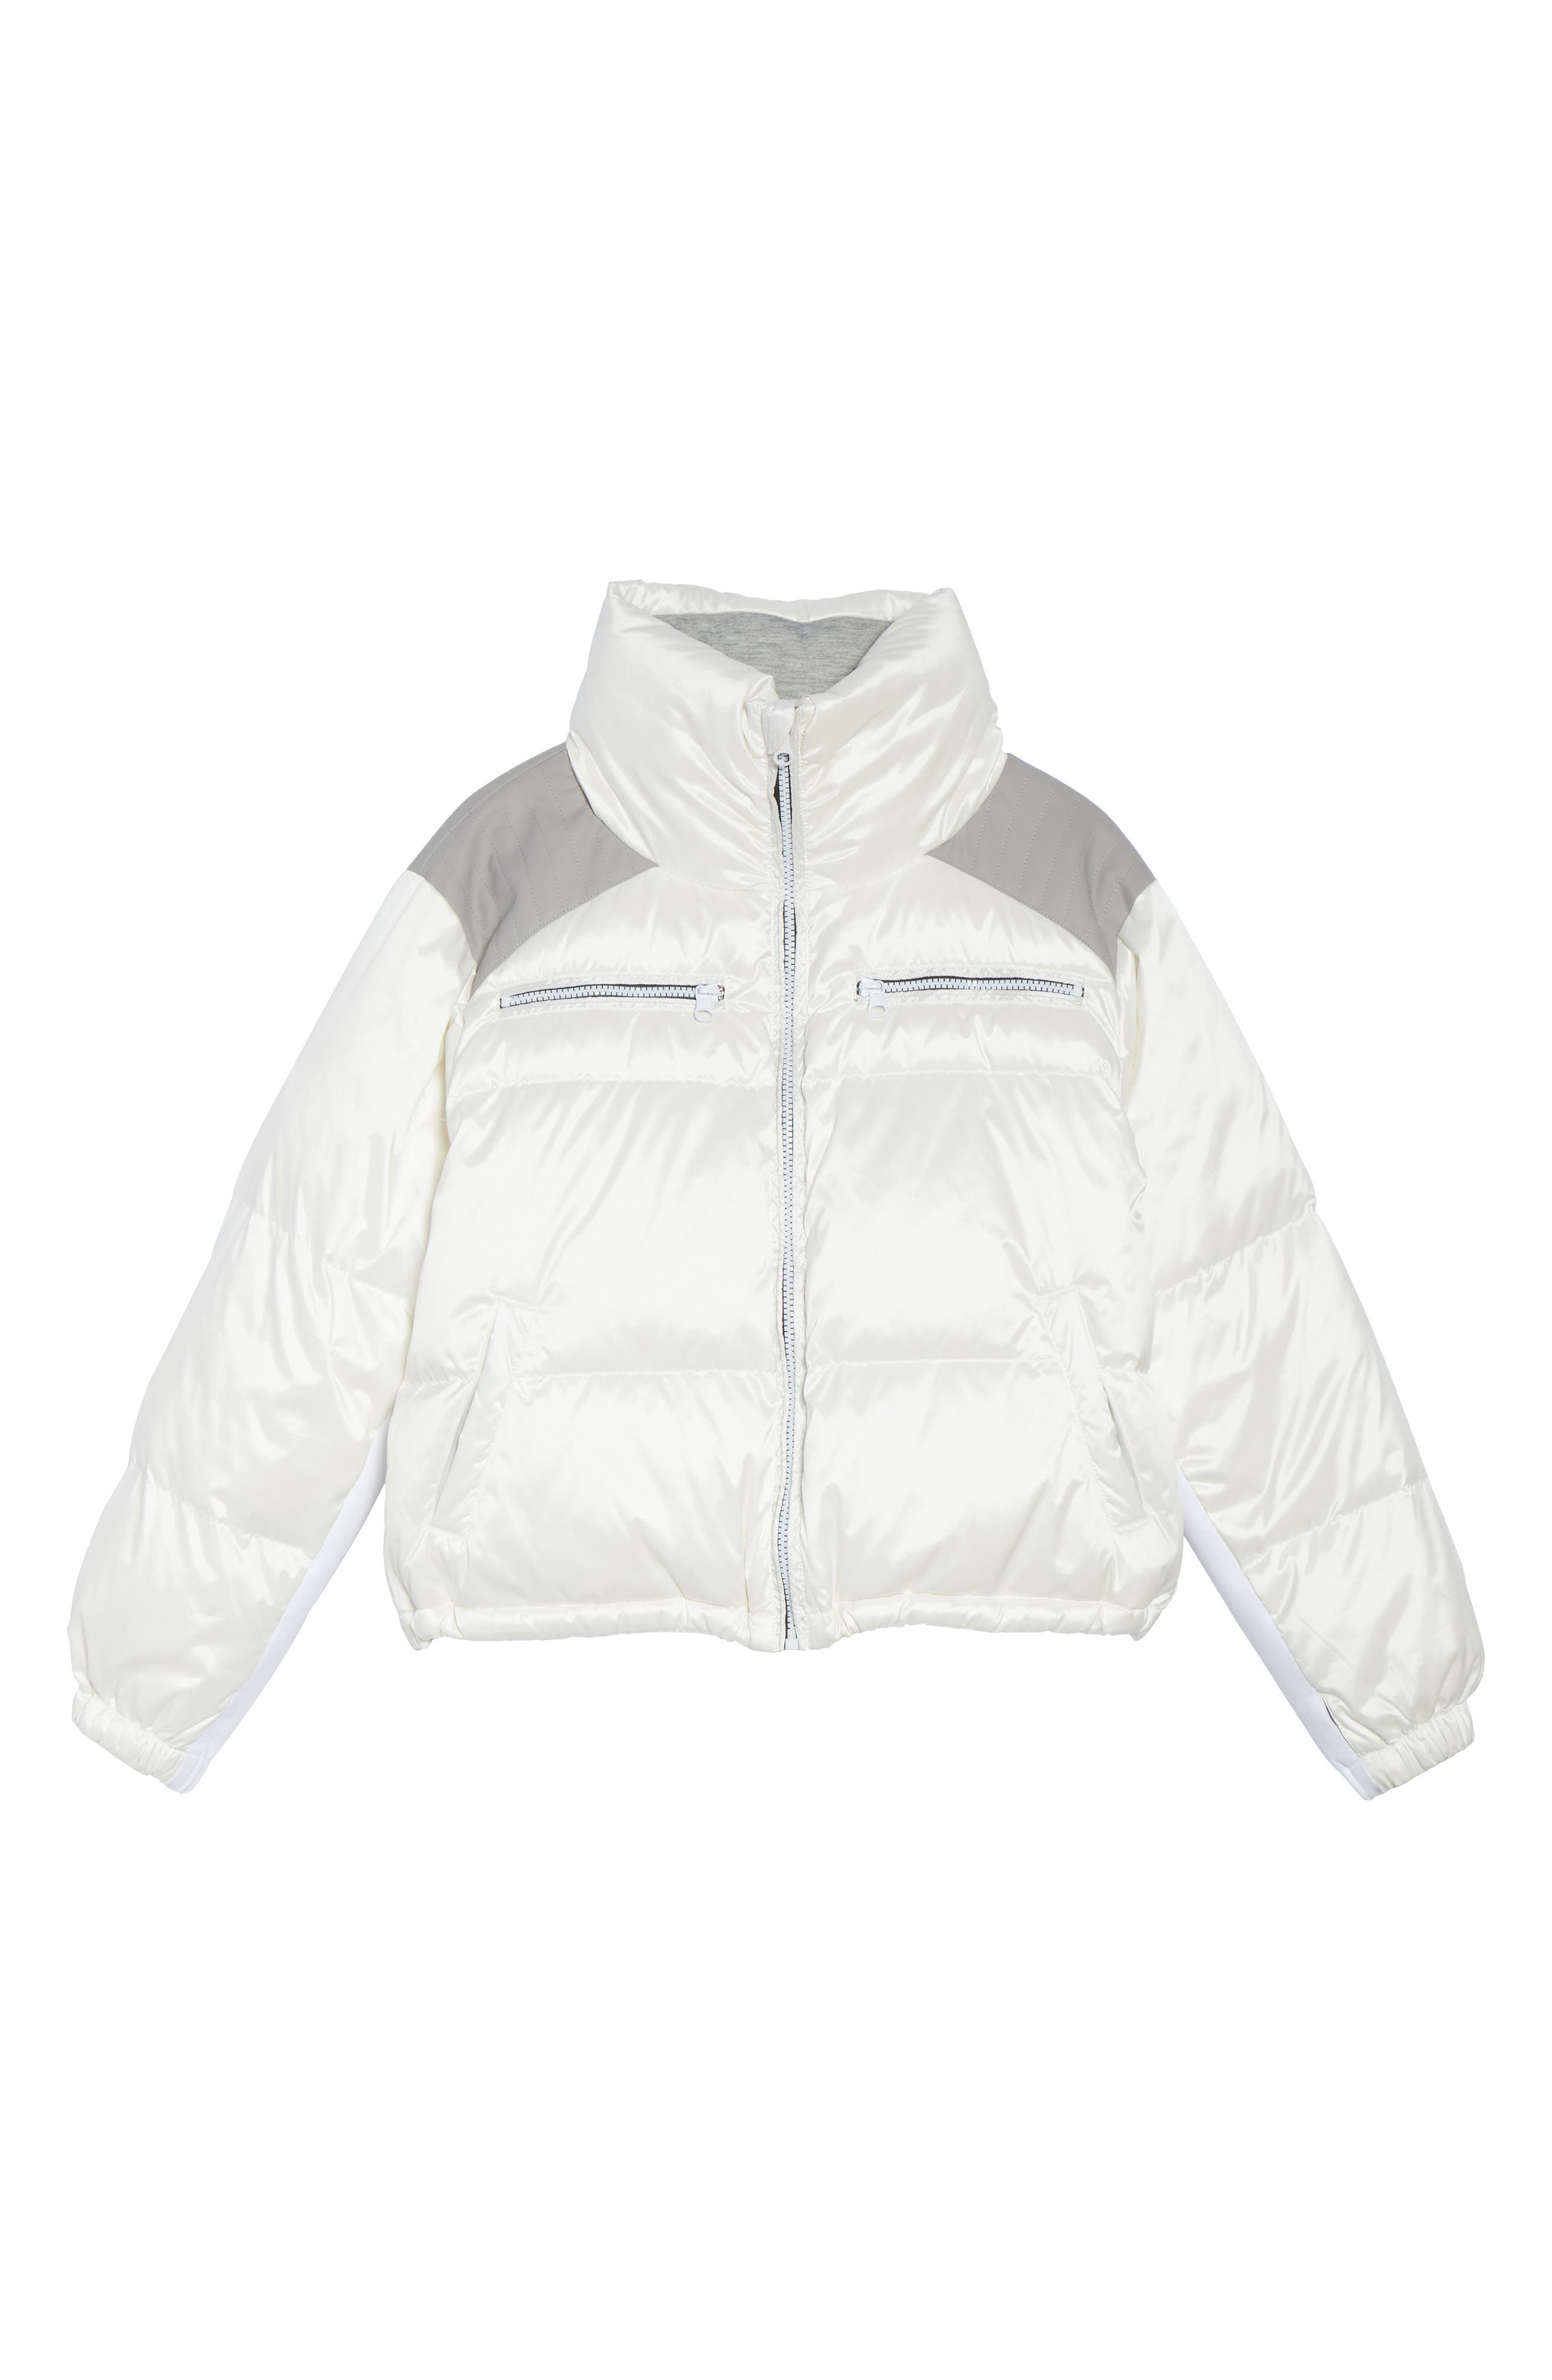 Reversible Puffer Jacket,                             Alternate thumbnail 6, color,                             WHITE/HEATHER GREY